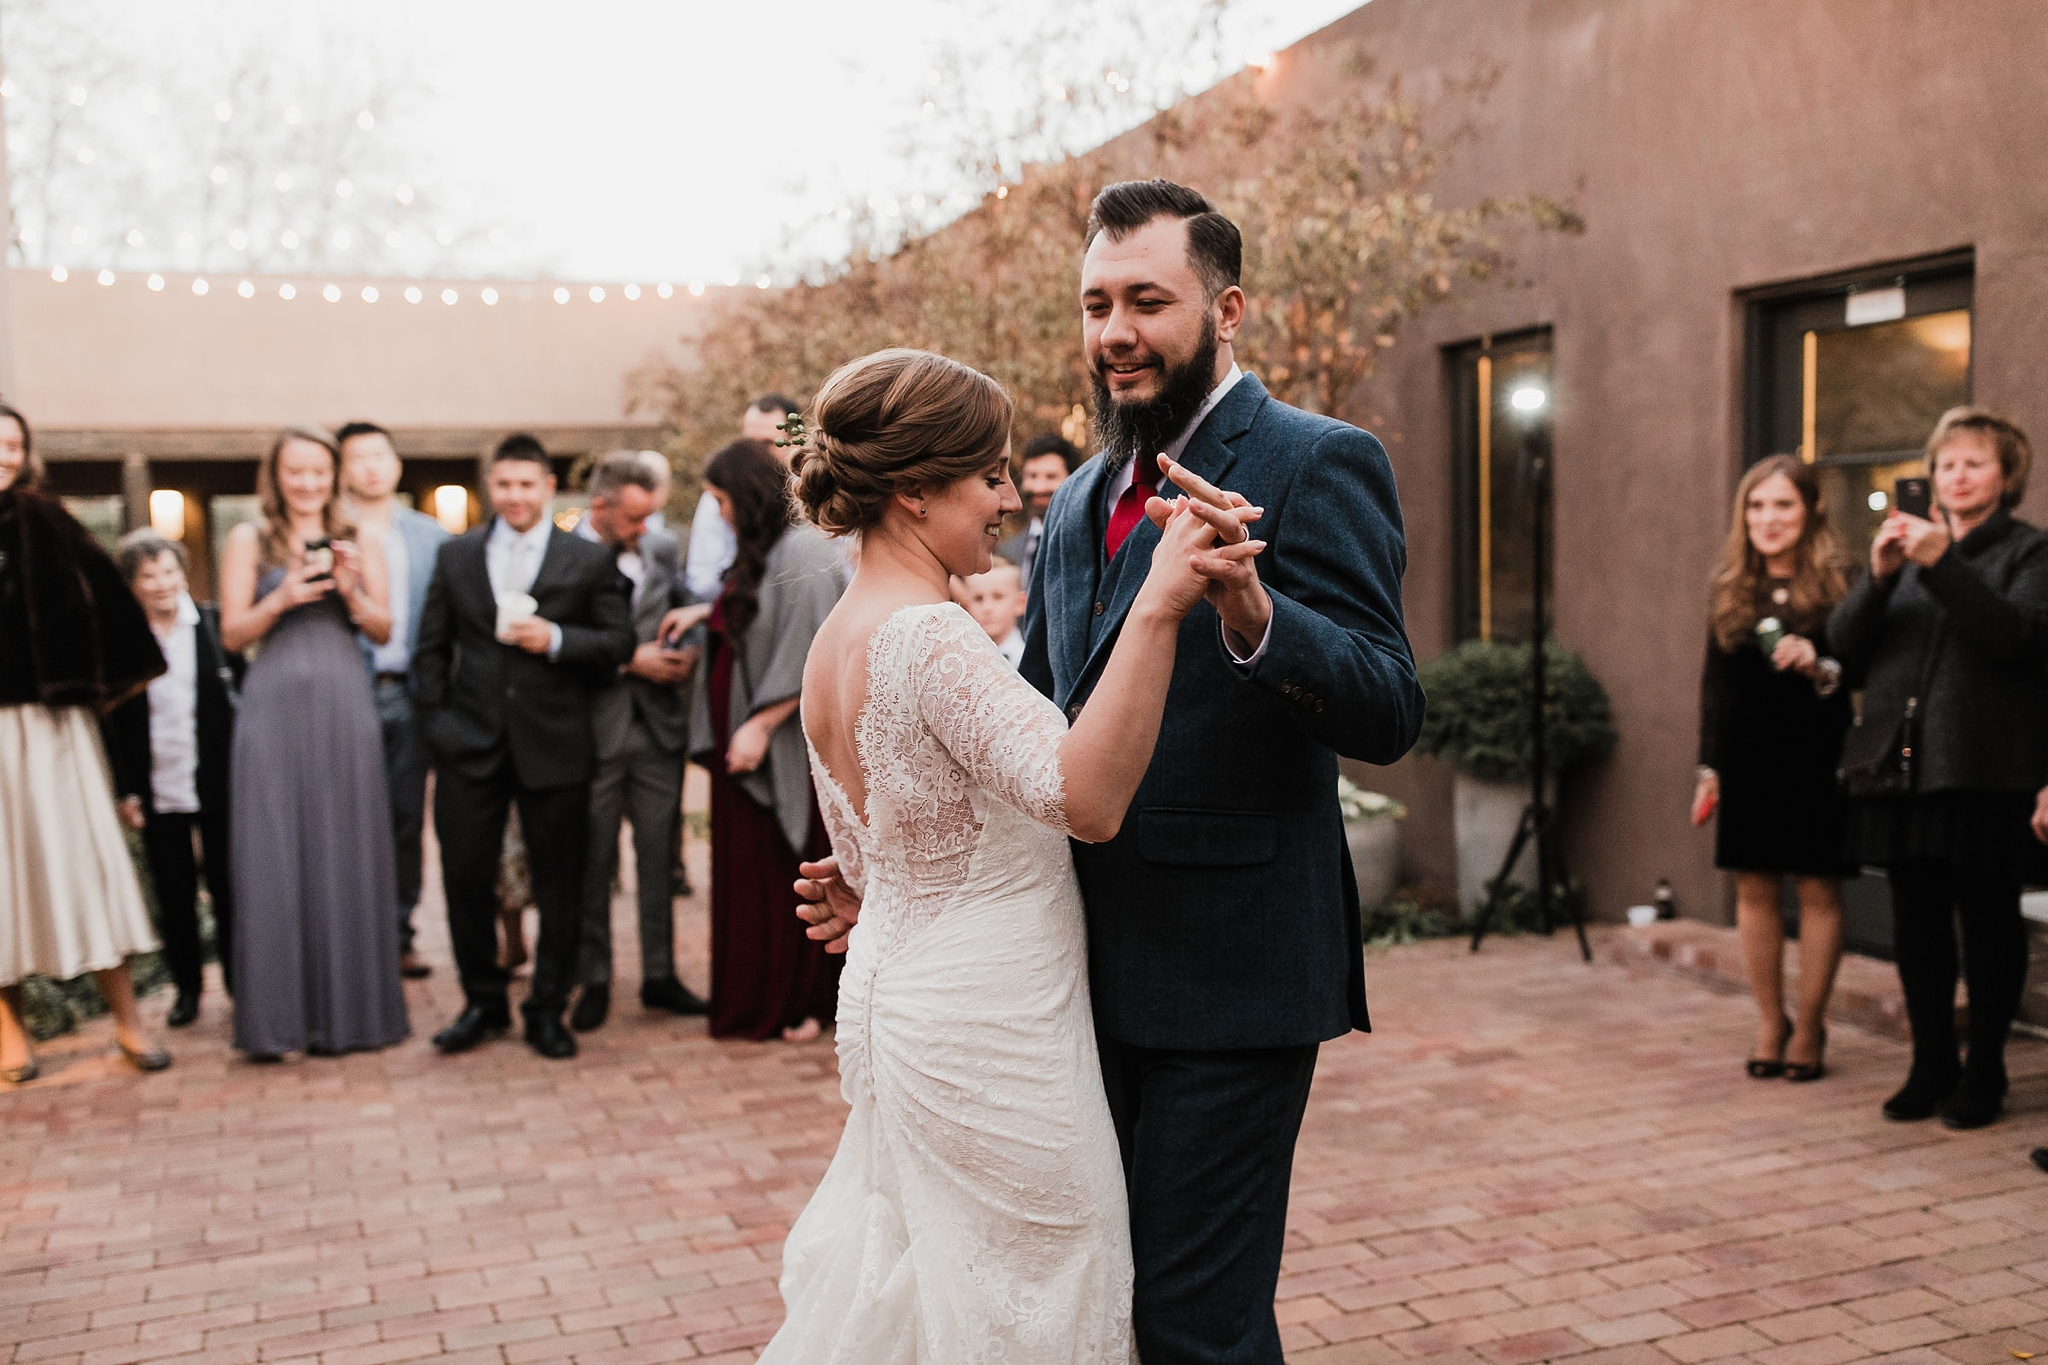 Alicia+lucia+photography+-+albuquerque+wedding+photographer+-+santa+fe+wedding+photography+-+new+mexico+wedding+photographer+-+albuquerque+wedding+-+sarabande+bed+breakfast+-+bed+and+breakfast+wedding_0108.jpg